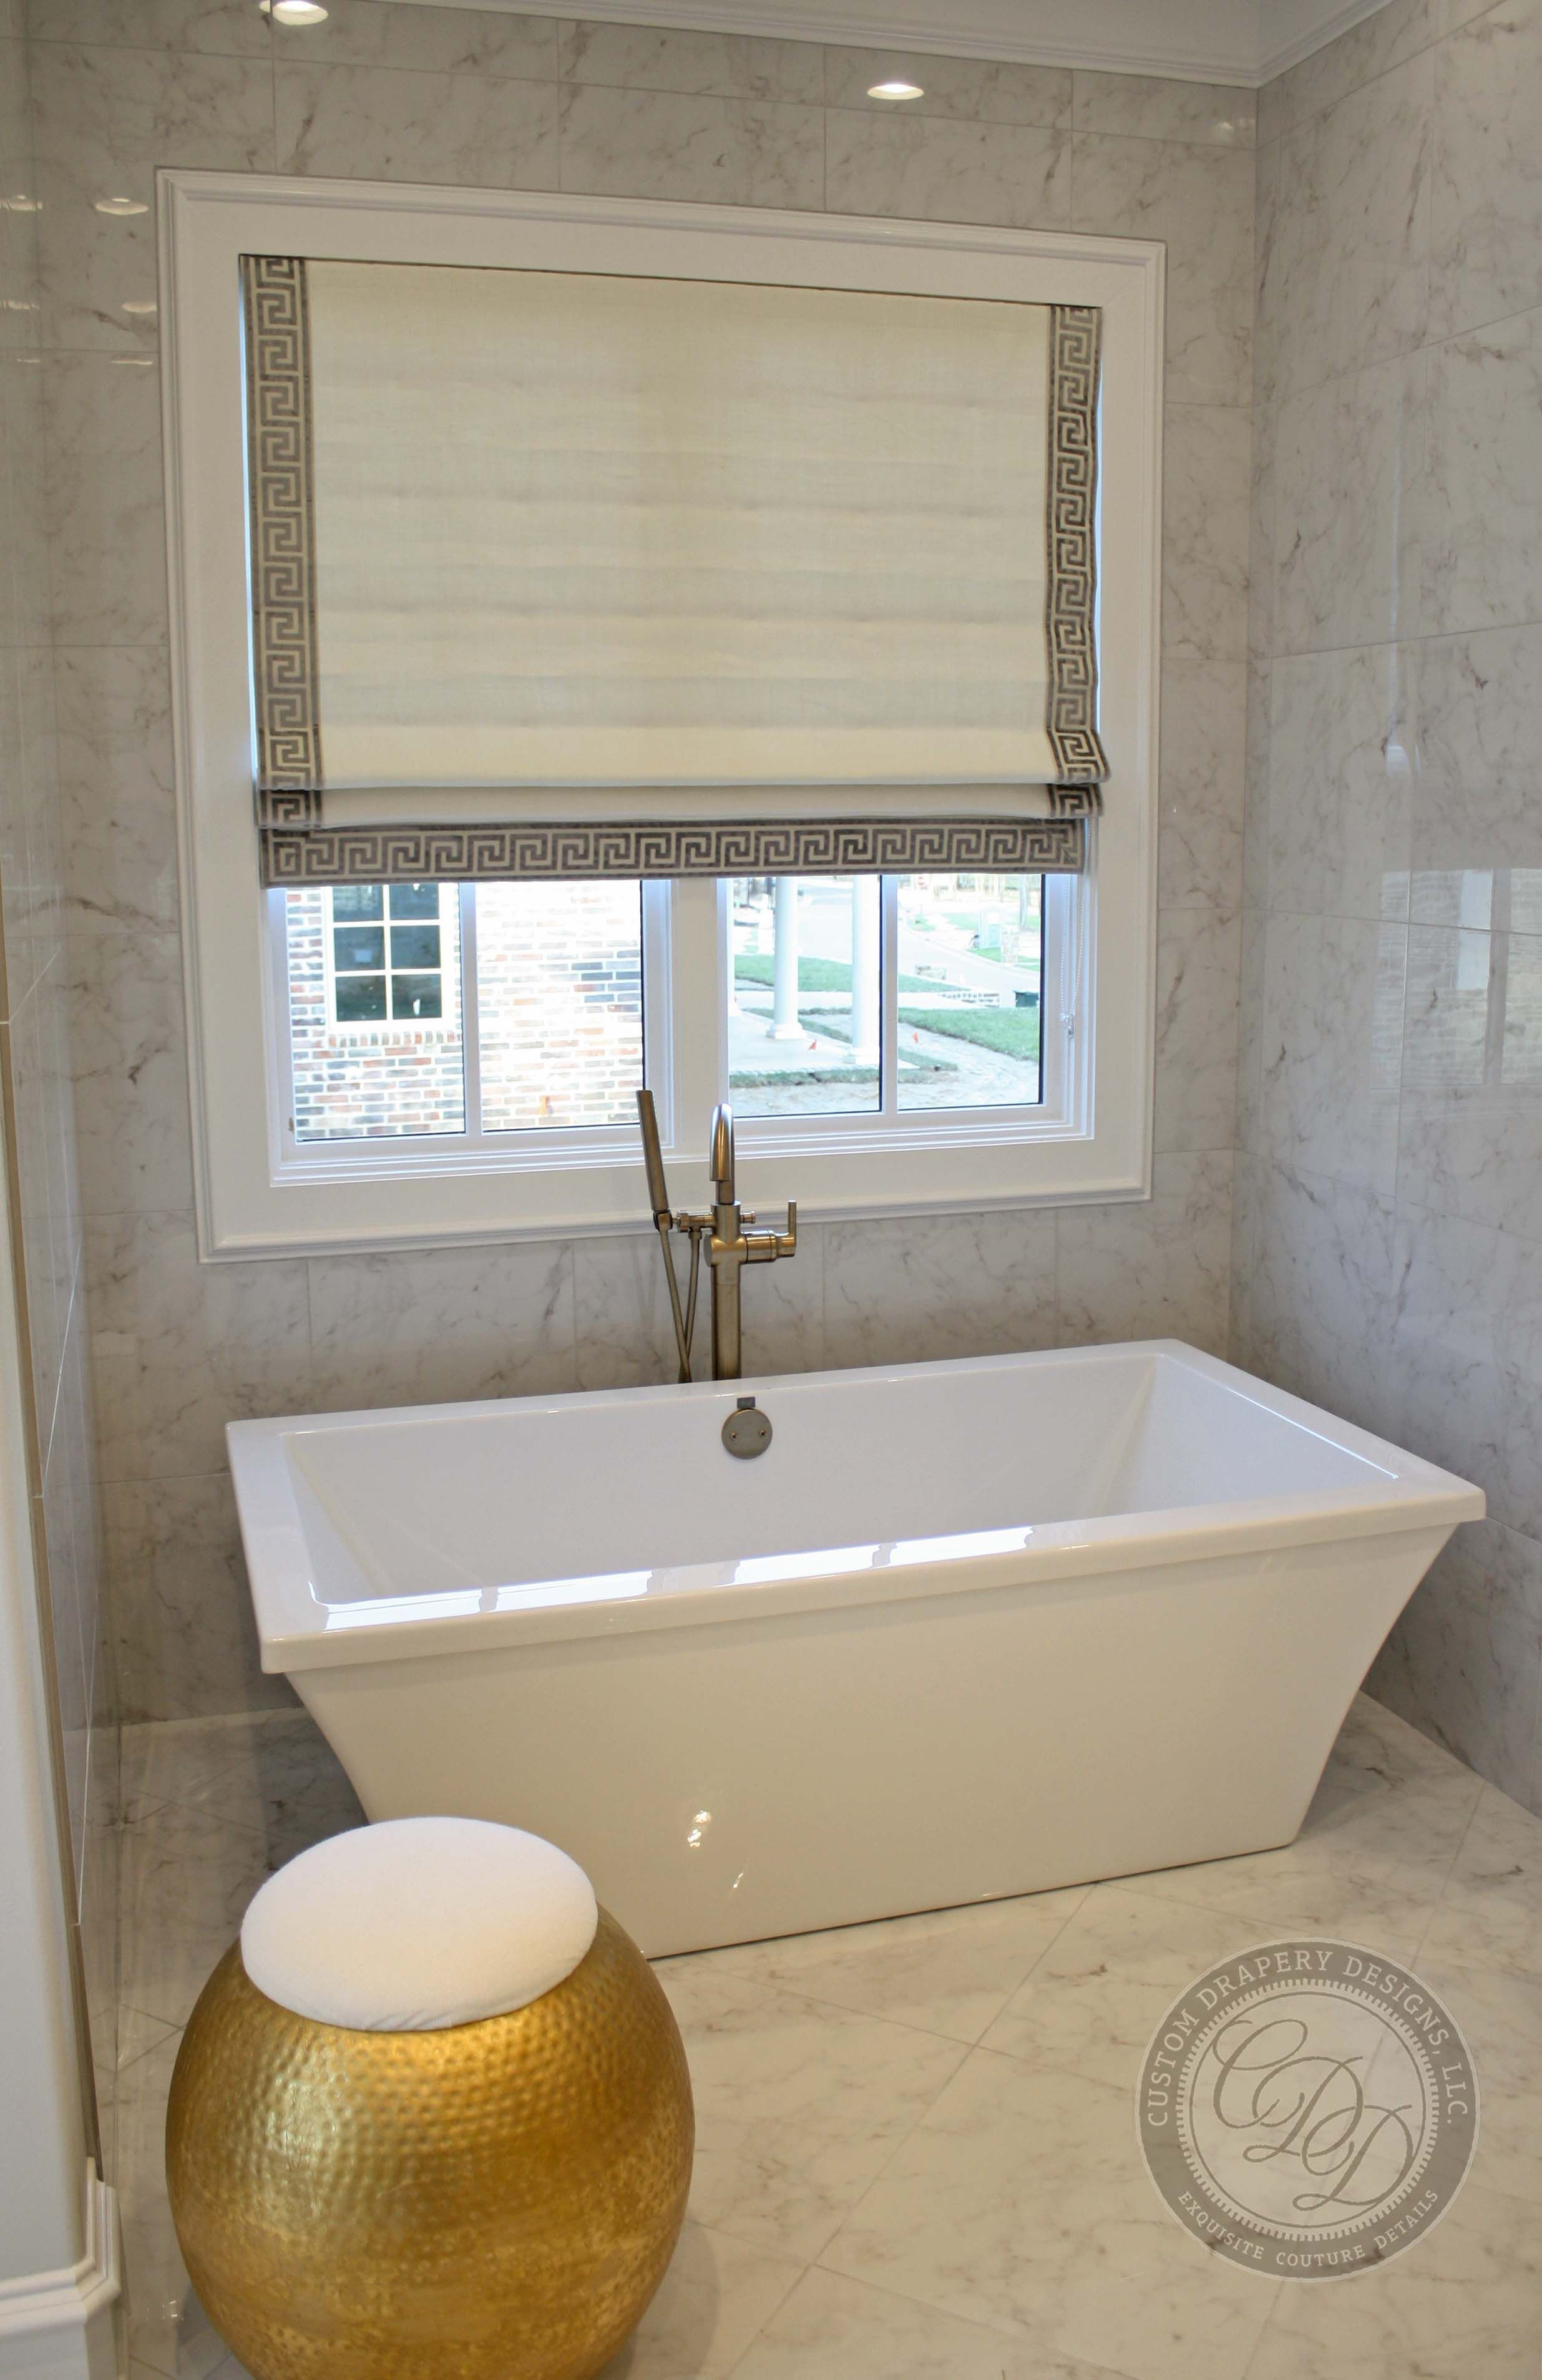 Custom Drapery Designs Llc What A Perfect Spot To Slip Away And Relax Roman Shade Featu Bathroom Window Treatments Bathroom Windows Bathroom Window Privacy